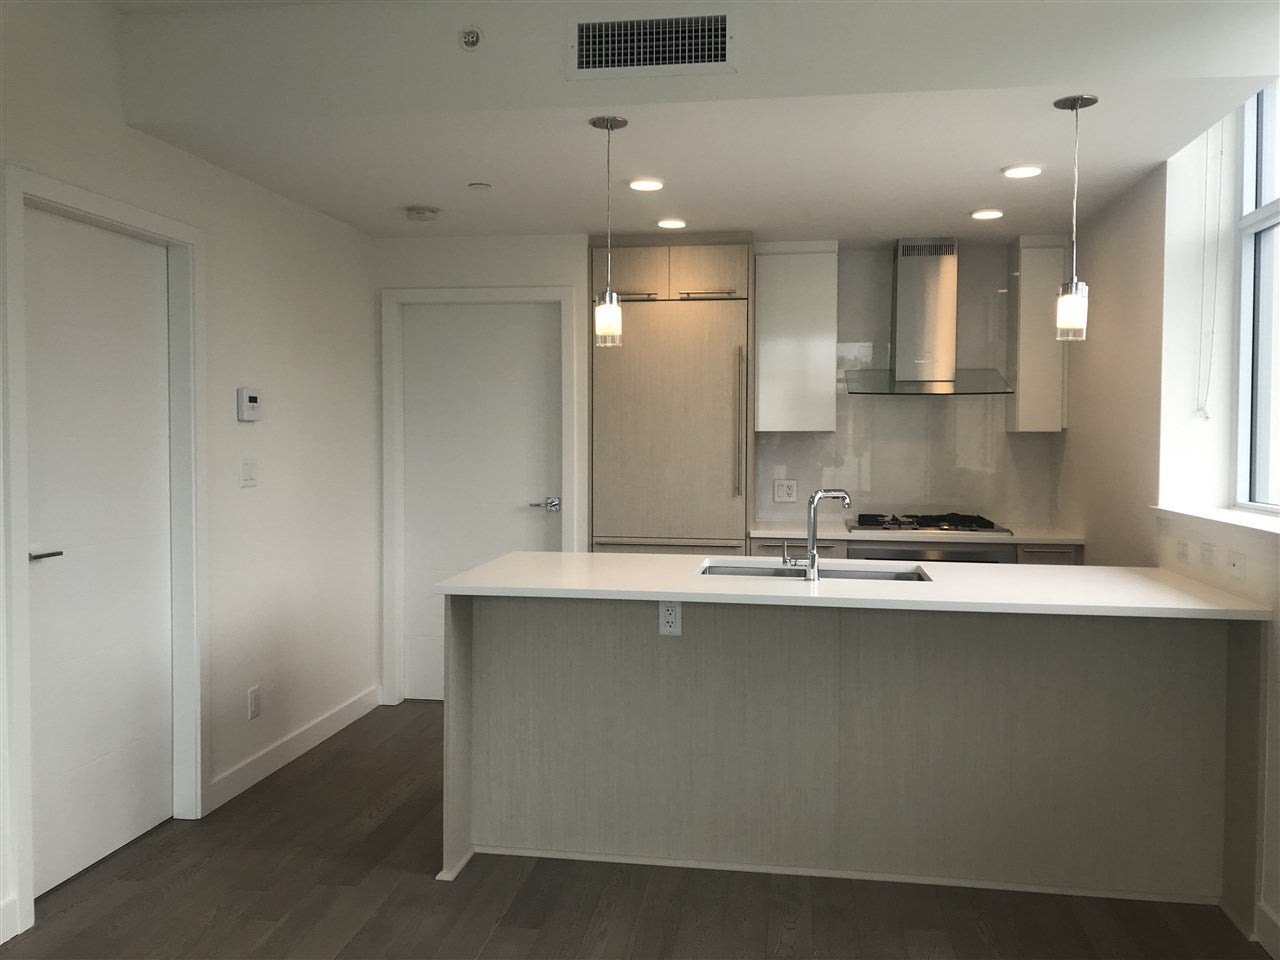 214 5033 CAMBIE STREET - Cambie Apartment/Condo for sale, 2 Bedrooms (R2459525) - #7